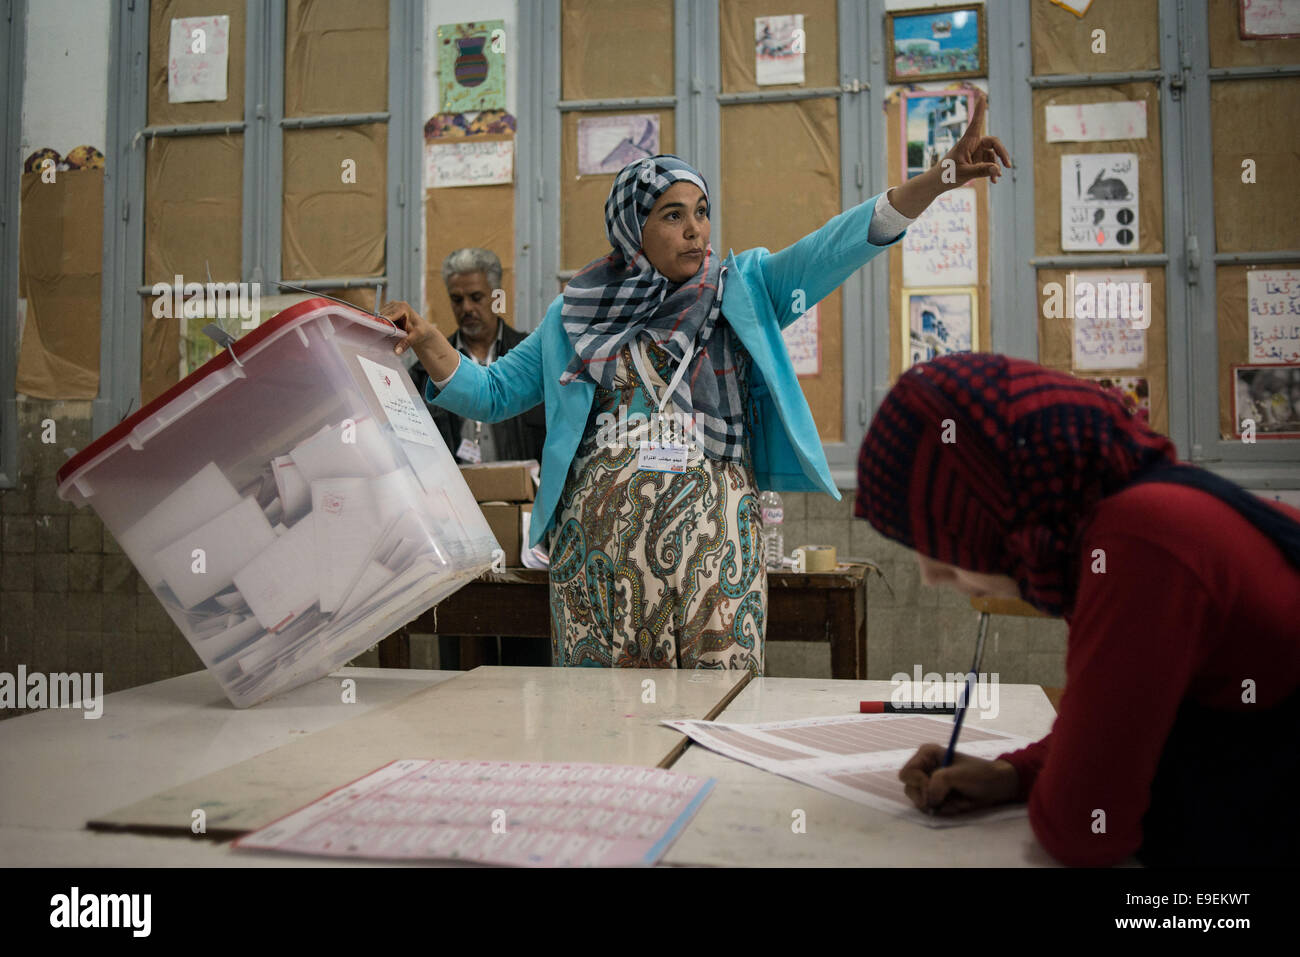 Tunis, Tunisia. 26th Oct, 2014. Electoral workers prepare for counting ballots at a polling station in Tunis, capital - Stock Image